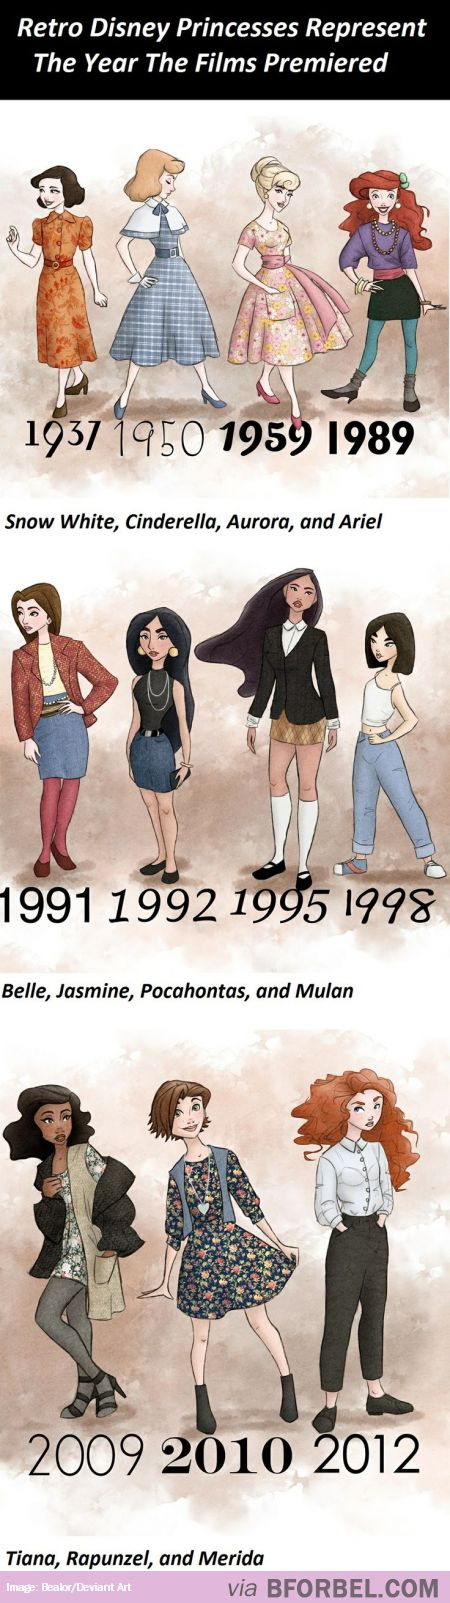 11 Retro Disney Princesses Dressed Up To Represent The Year The Films Premièred!